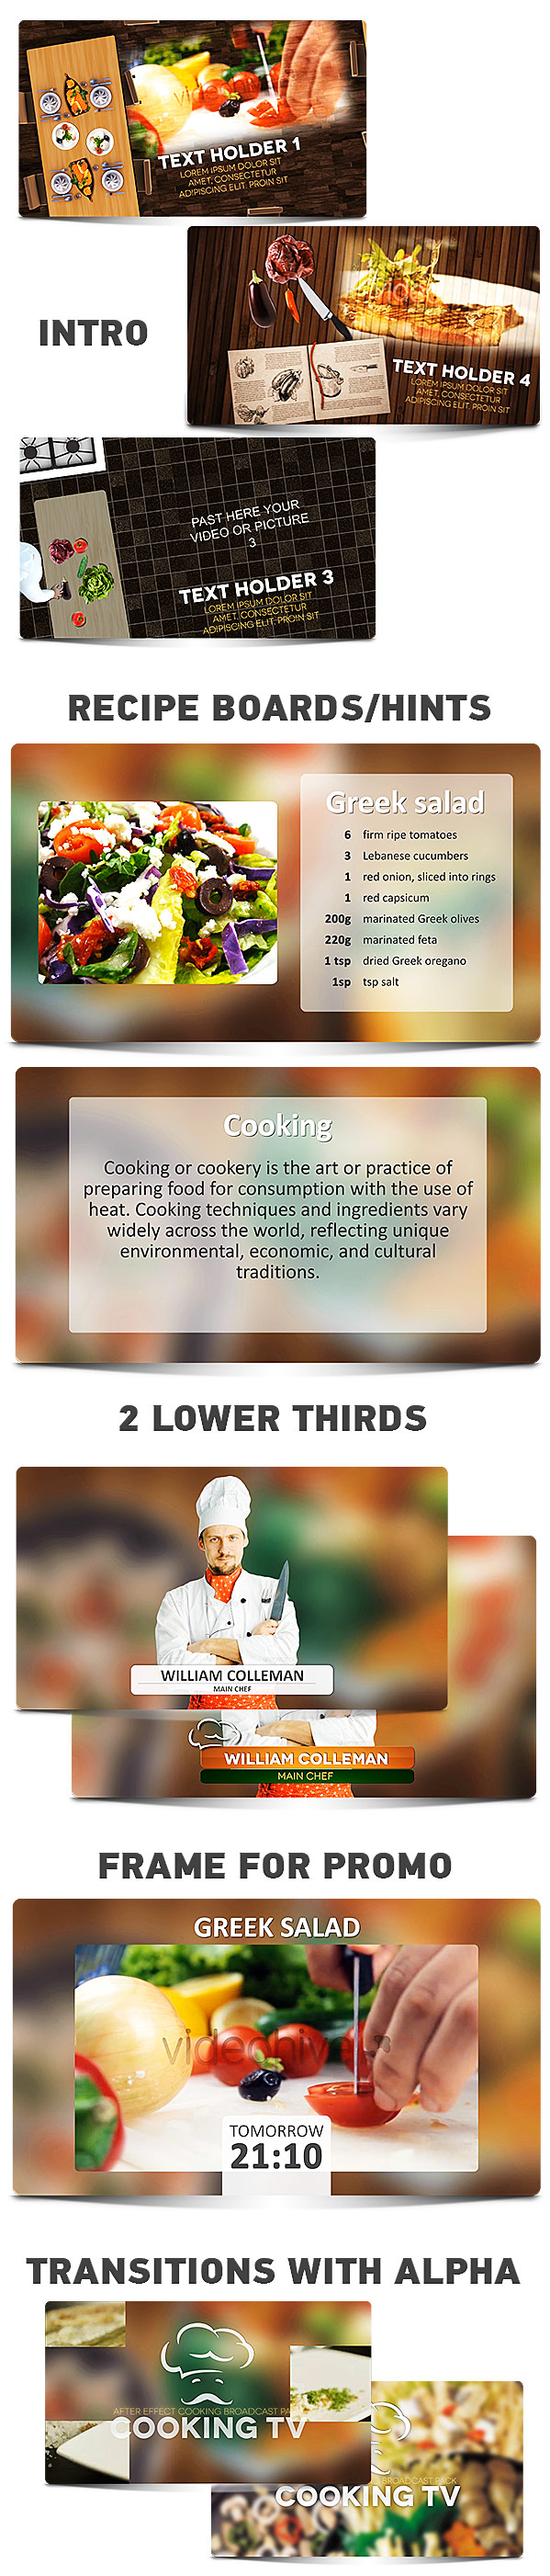 Cooking TV  - After Effects Cook Broadcast Pack - 7